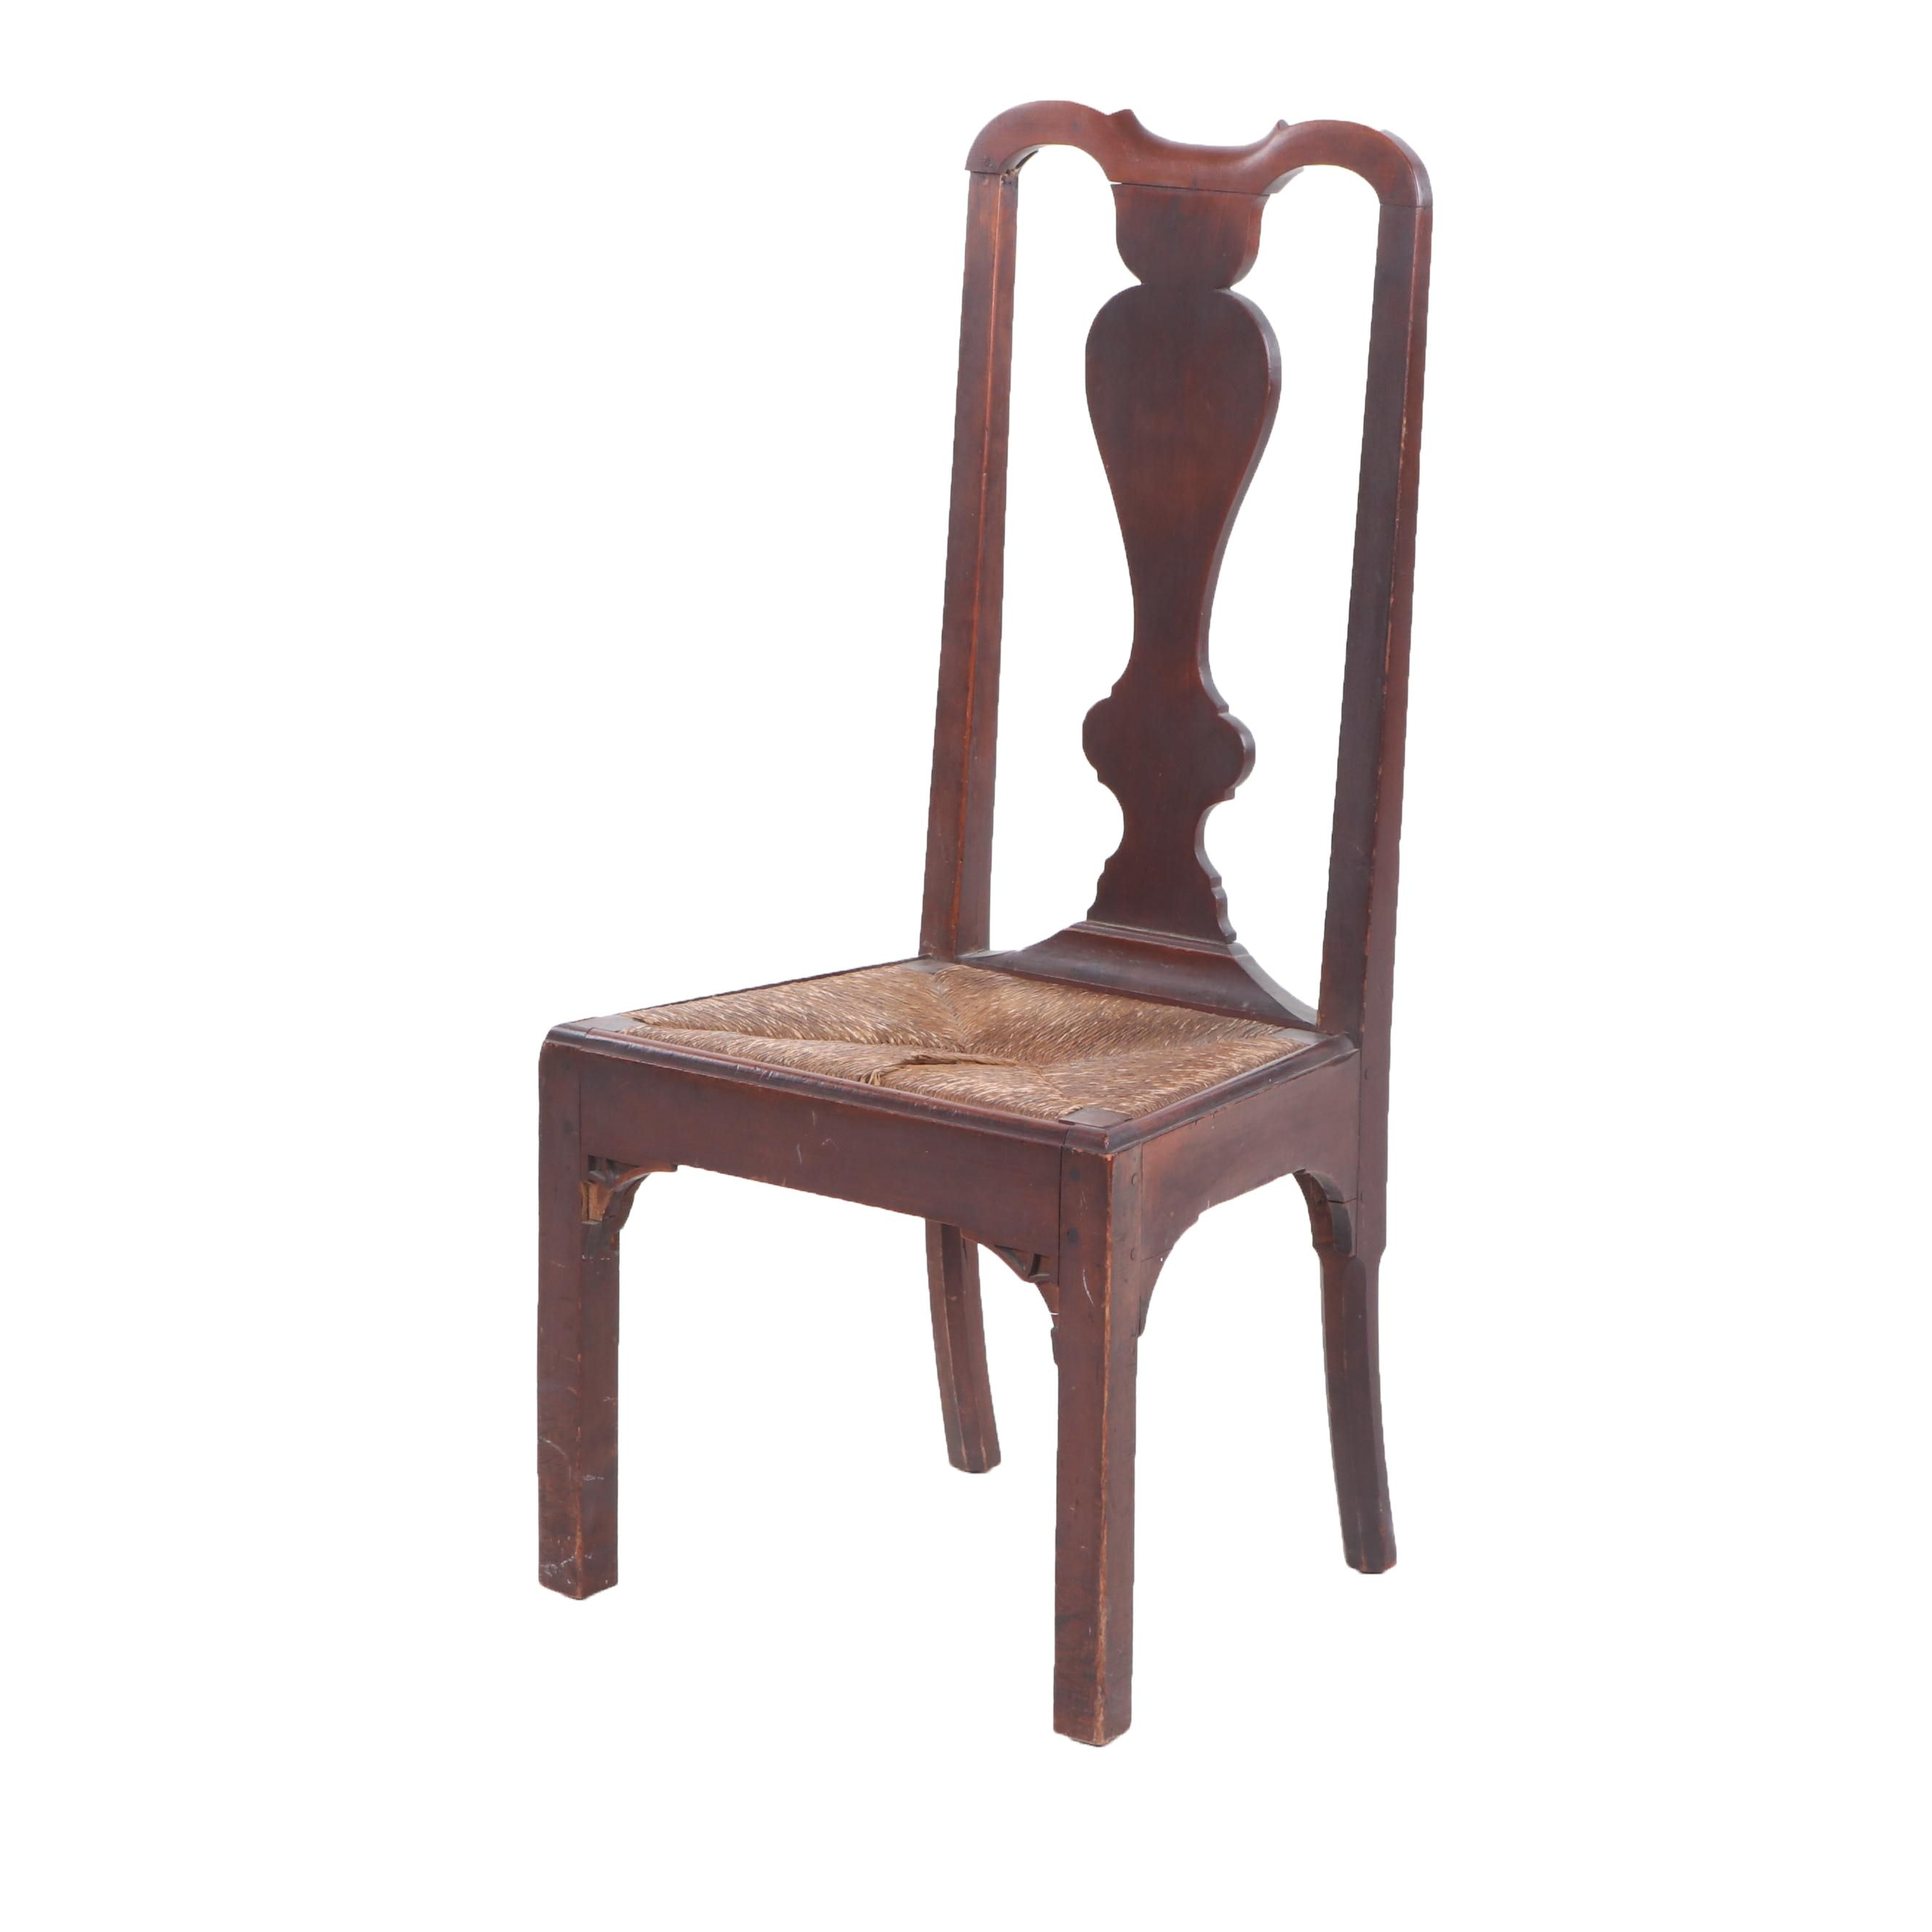 Queen Anne Connecticut Cherry Dining Chair with Rush Seat, Mid-18th Century